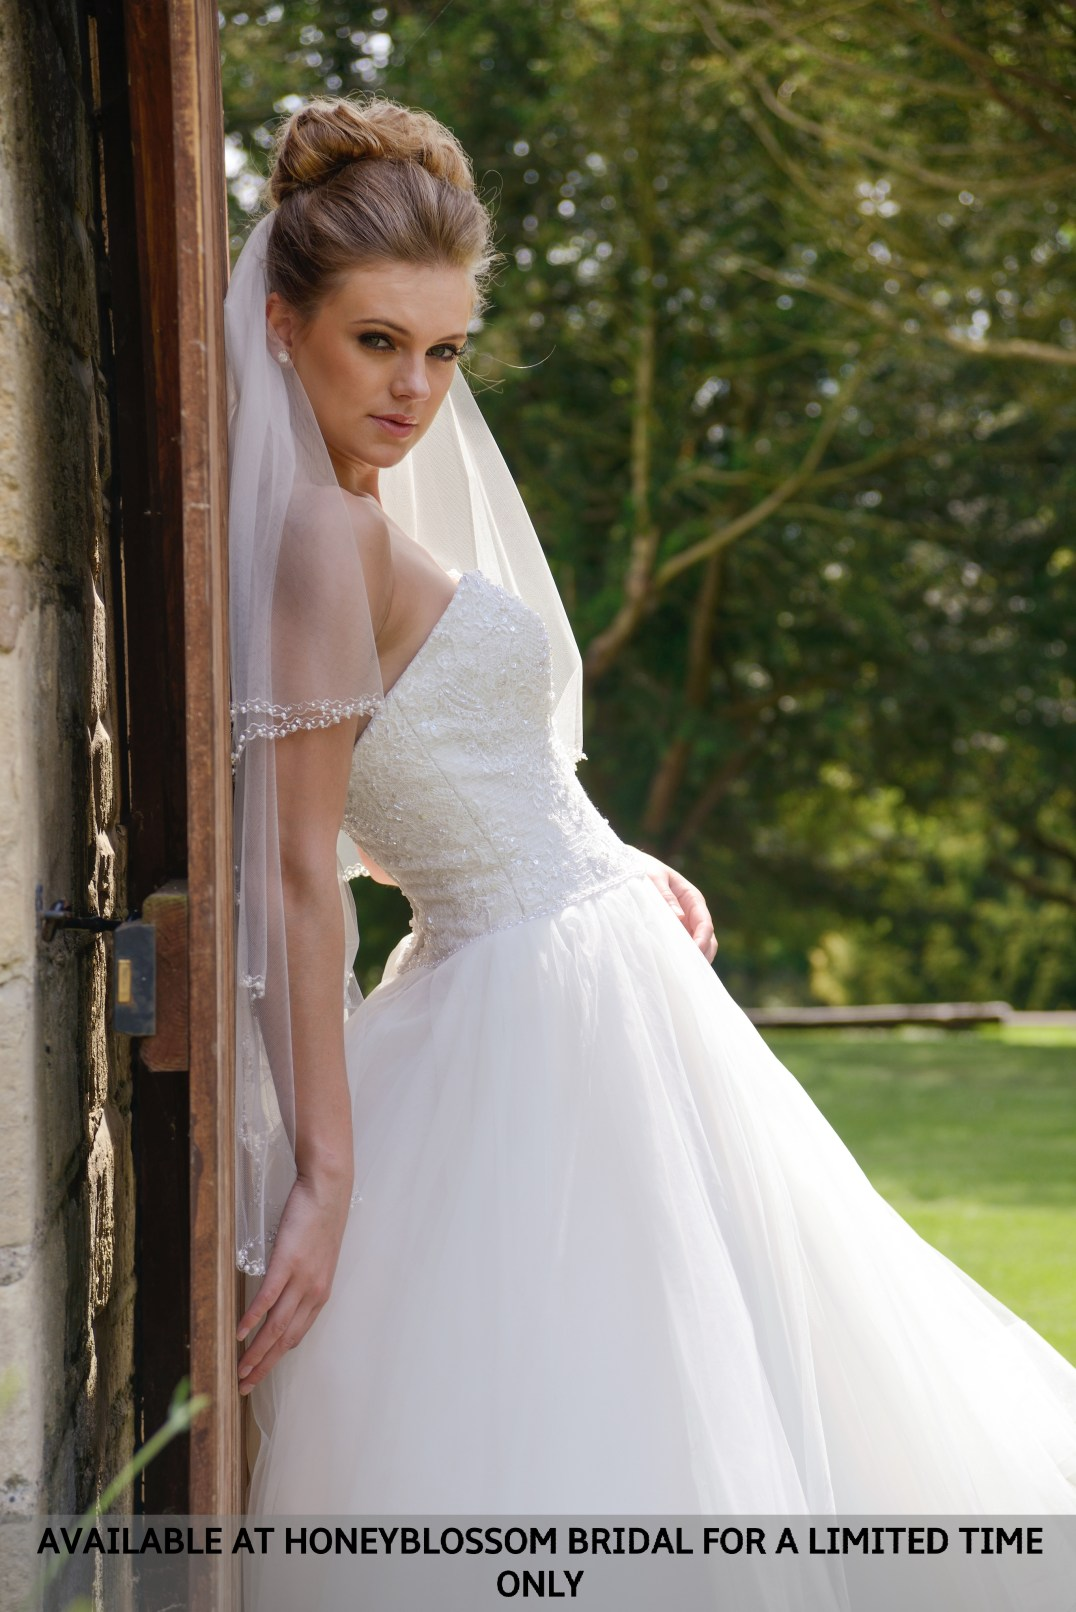 GAIA Nicole wedding dress - Aavailable at Honeyblossom Bridal boutique for a limited time only